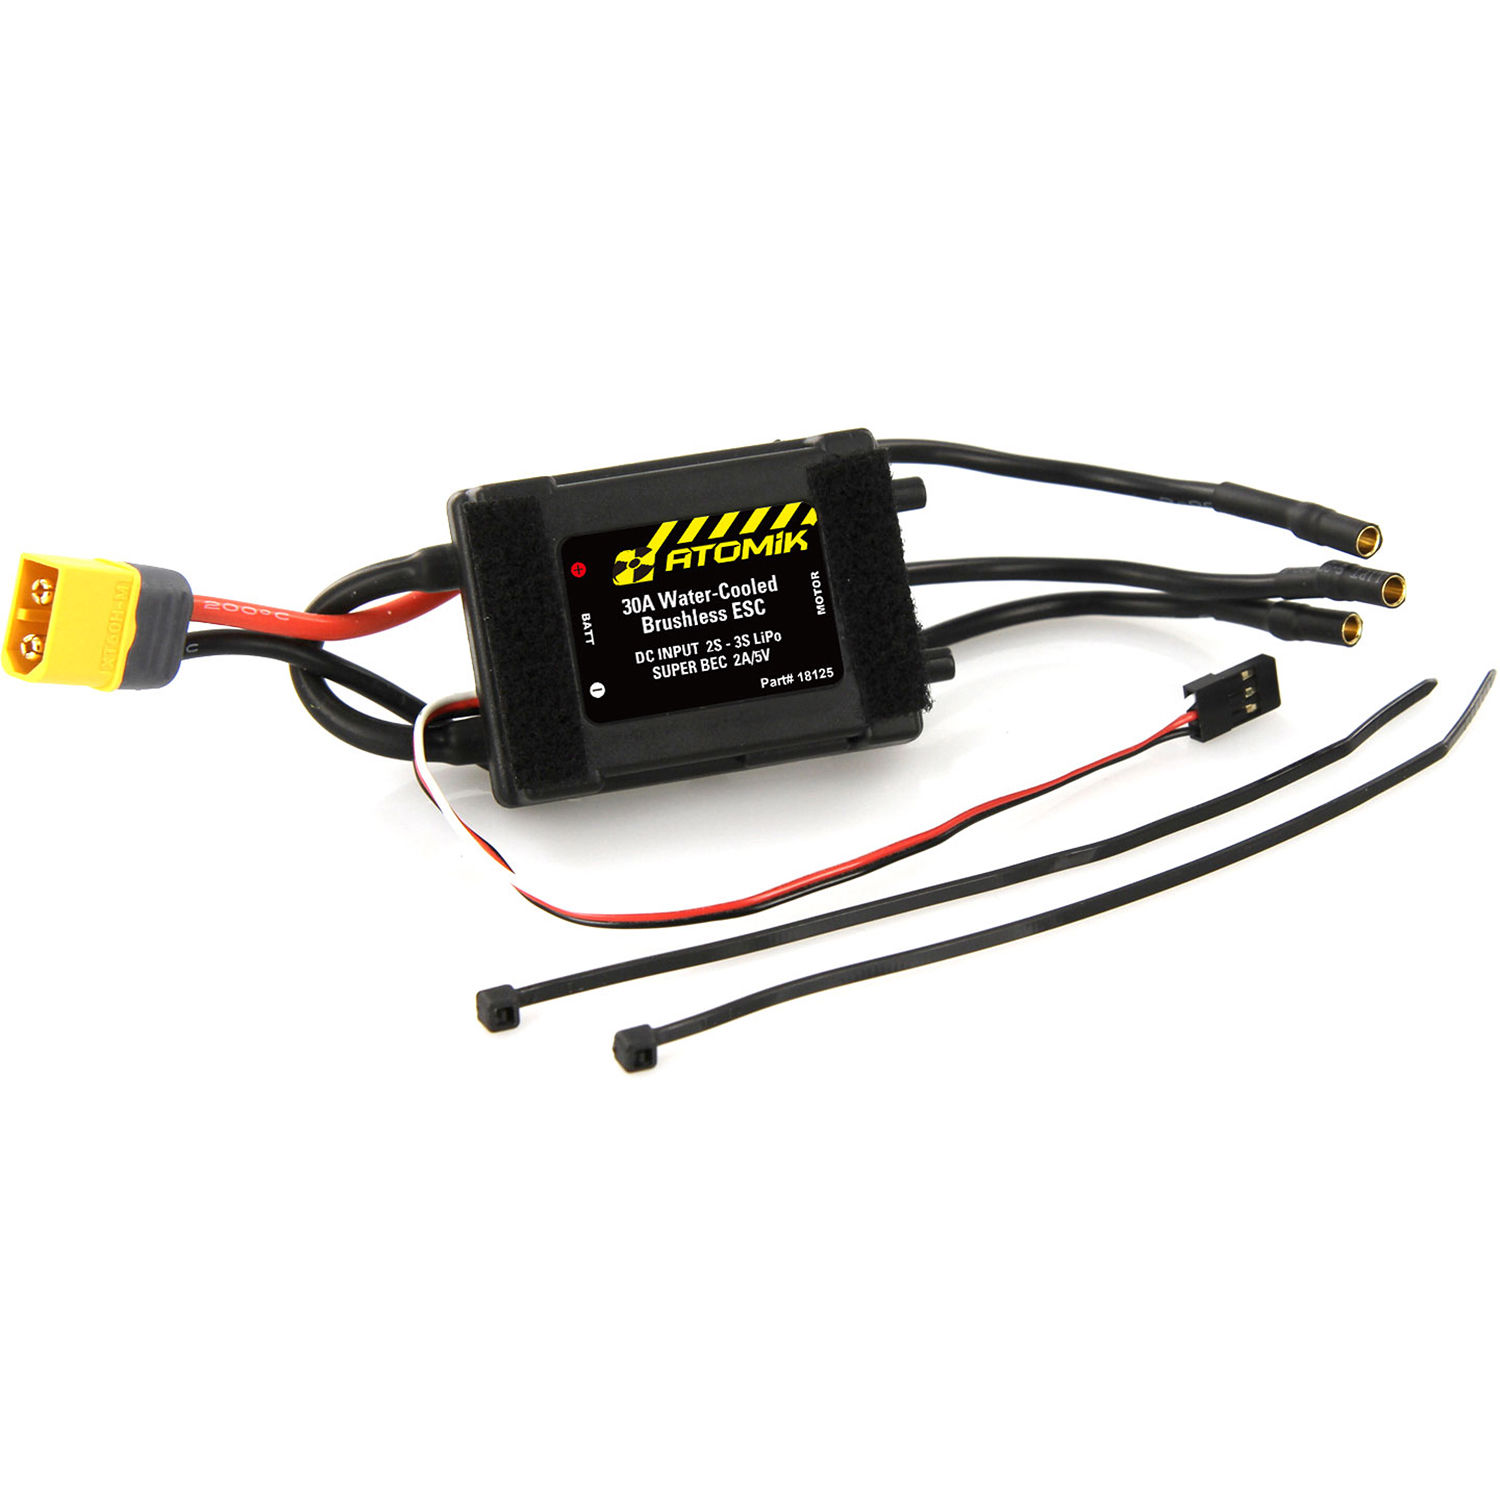 hight resolution of atomik rc 30a water cooled brushless electronic speed controller for barbwire 2 rc boat